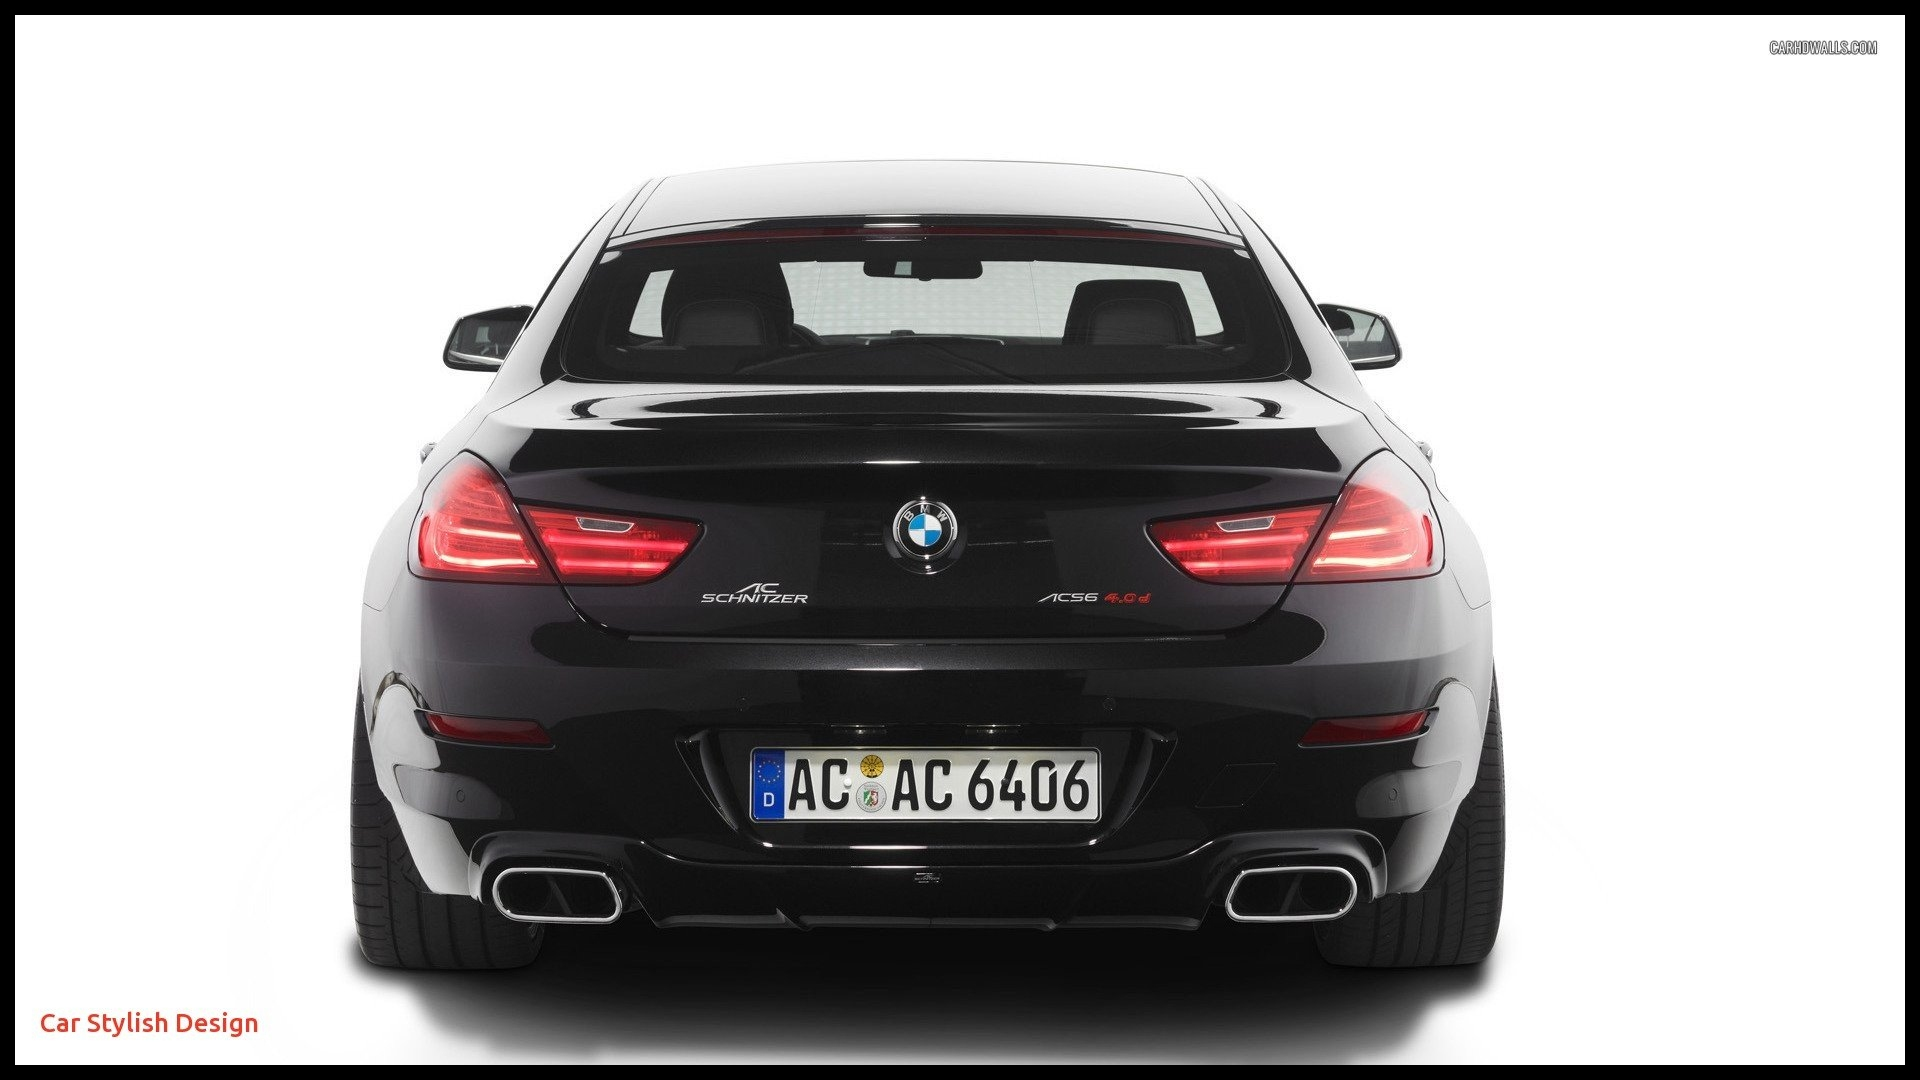 Bmw 650i Beautiful Ac Schnitzer Bmw 6 Series Gran Coupe 4 0d 2012 Walldevil